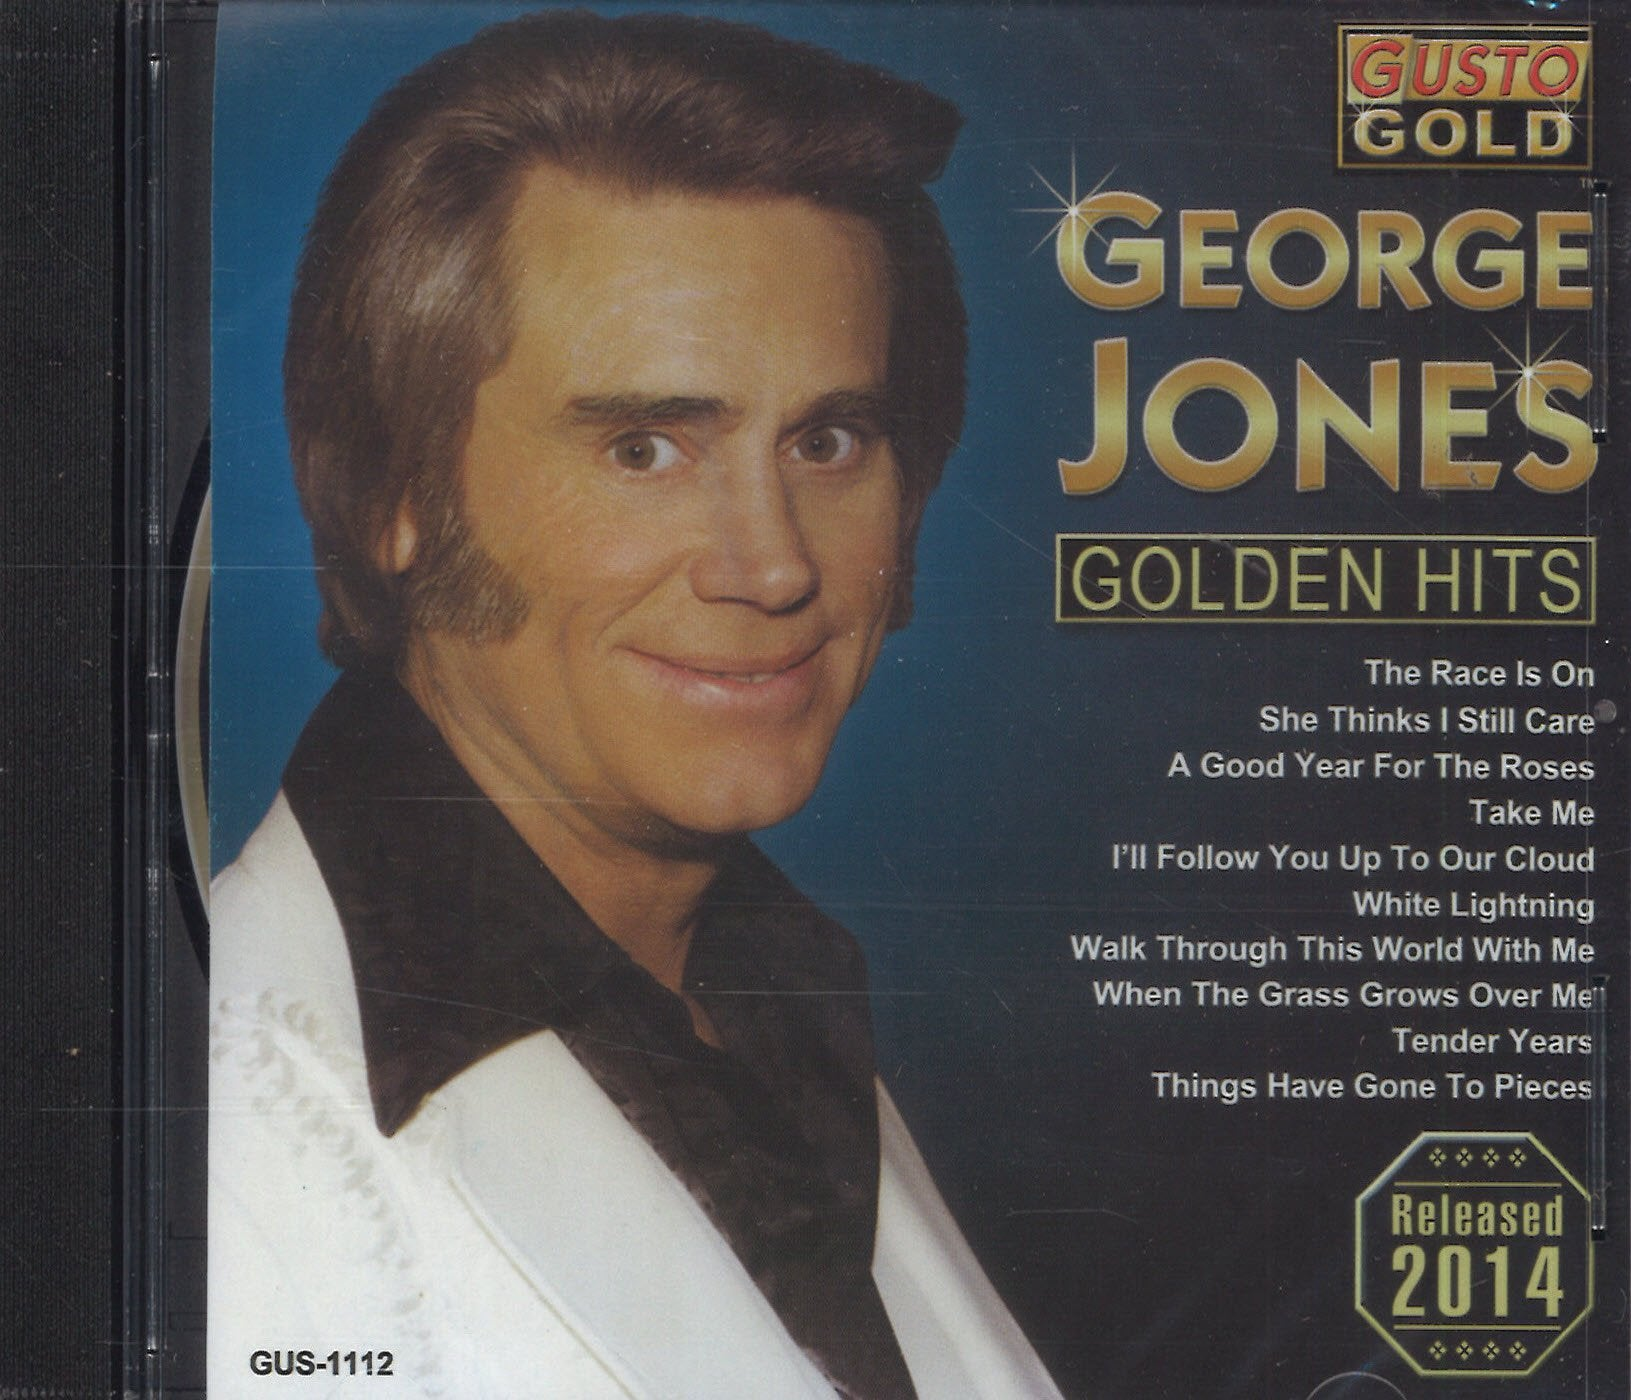 George Jones Golden Hits